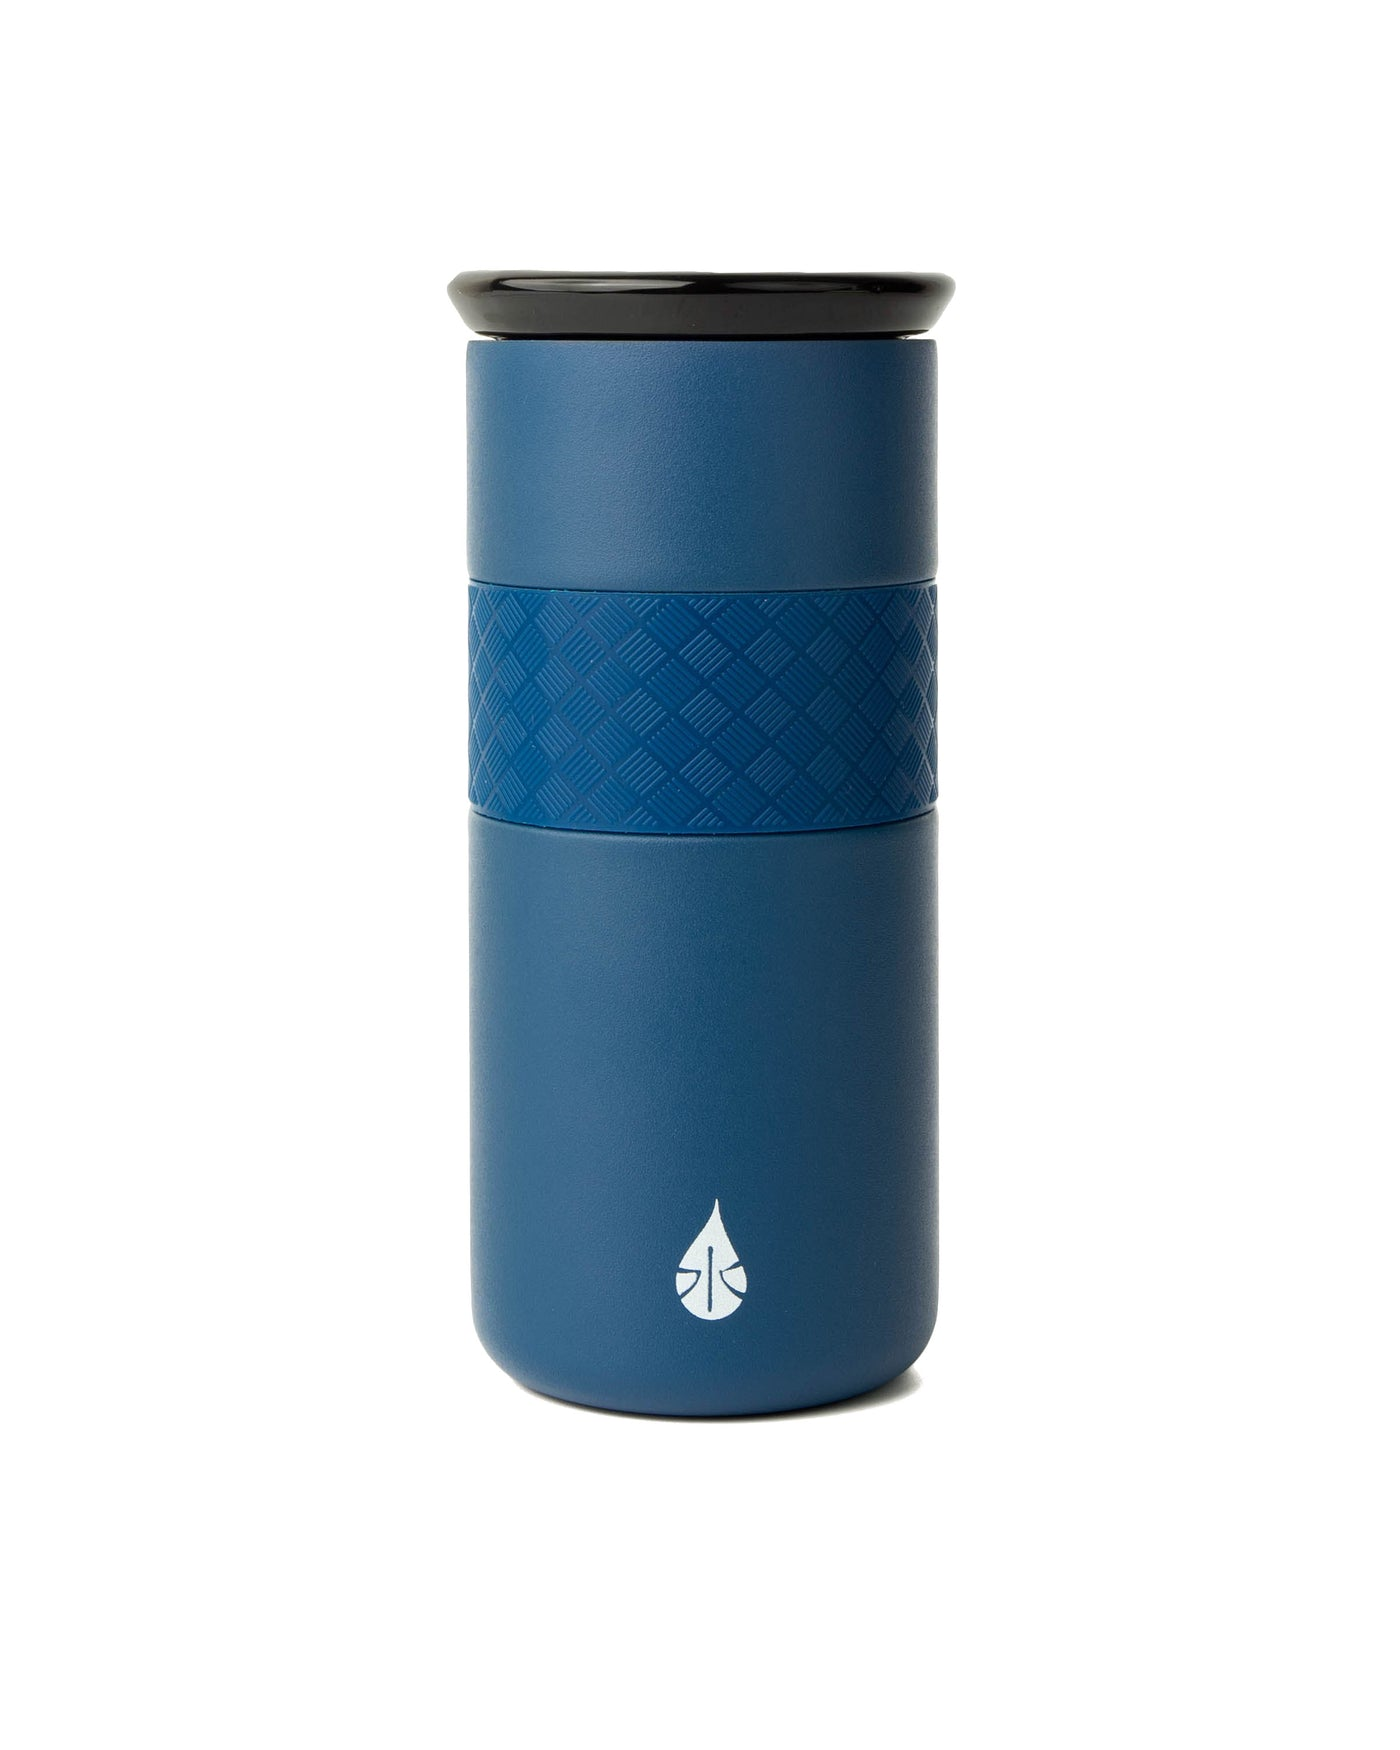 Elemental 16 oz Tumbler - Navy Blue